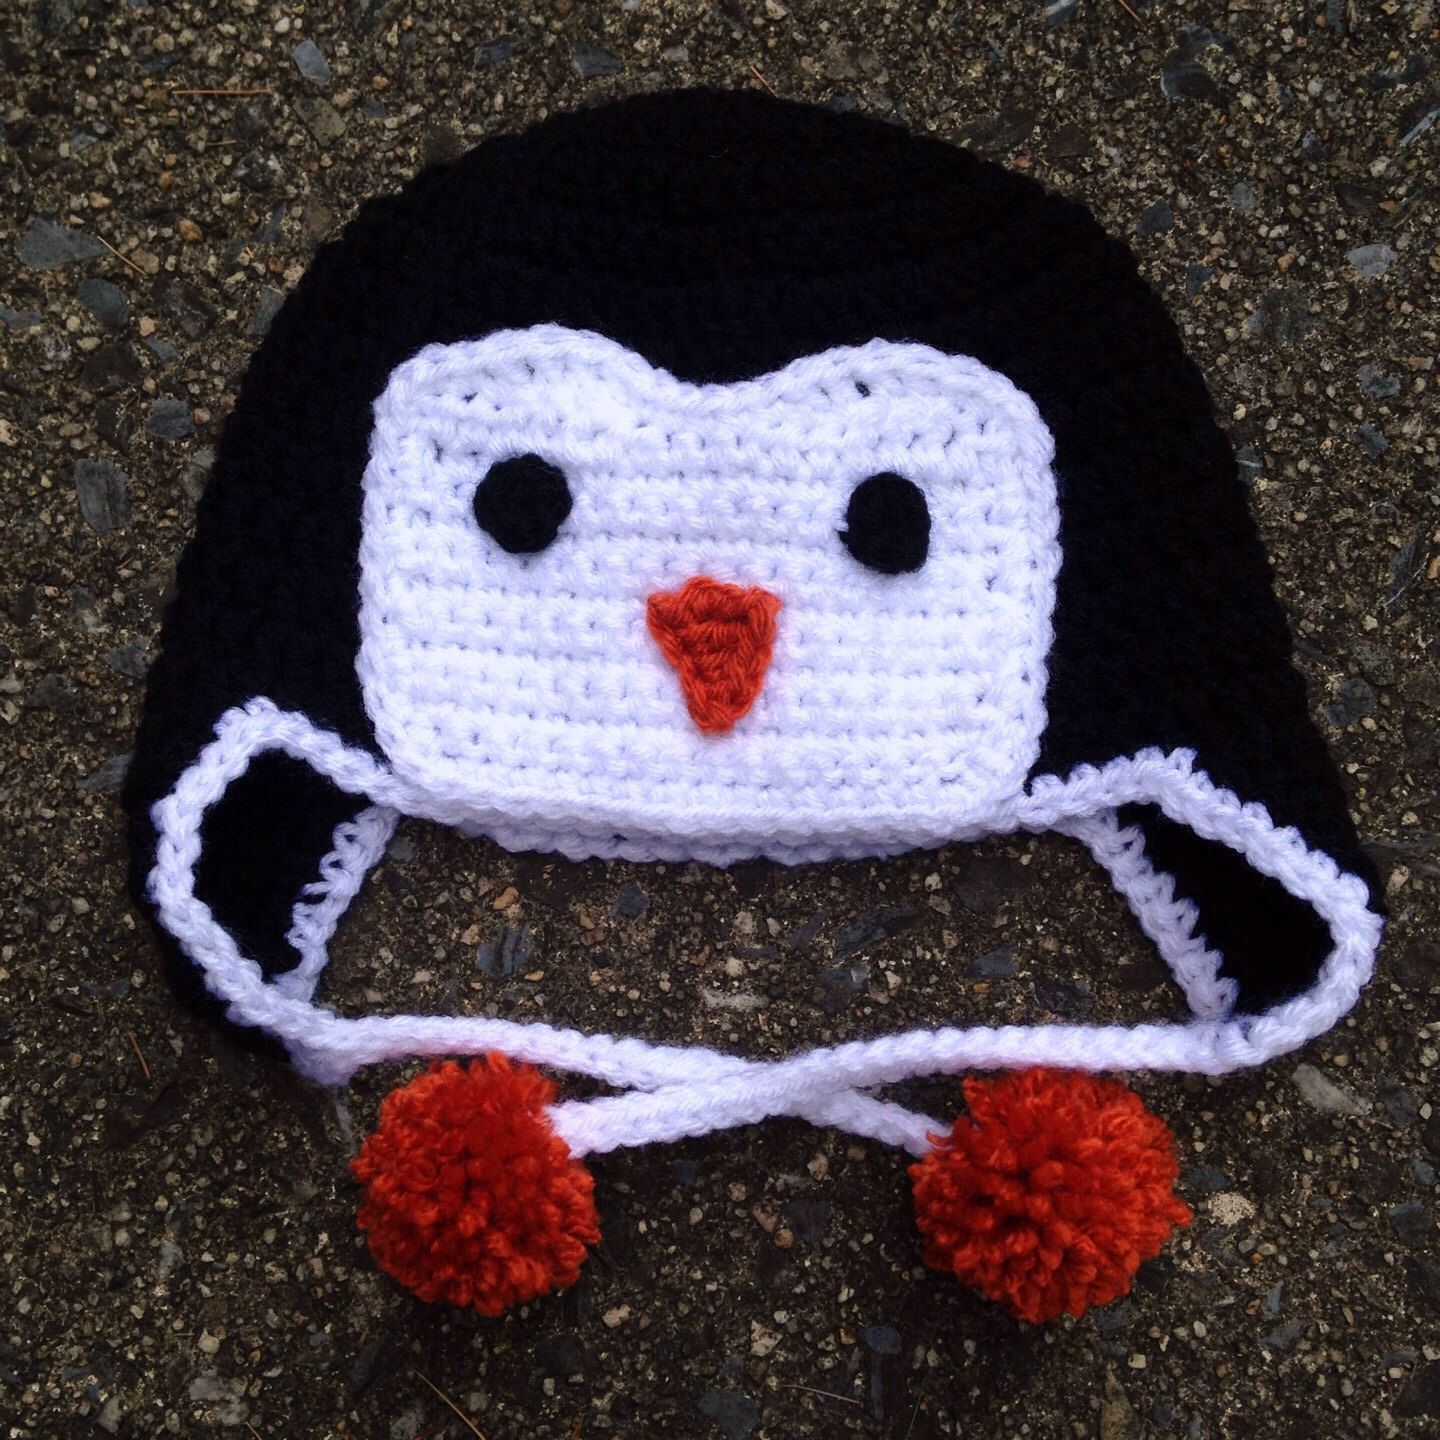 81a242b24a00f Crochet penguin earflap hat on Etsy by Knockout Kreations in all sizes.  Kids penguin costume. Newborn photo prop. Baby penguin hat. Kids penguin  hat.